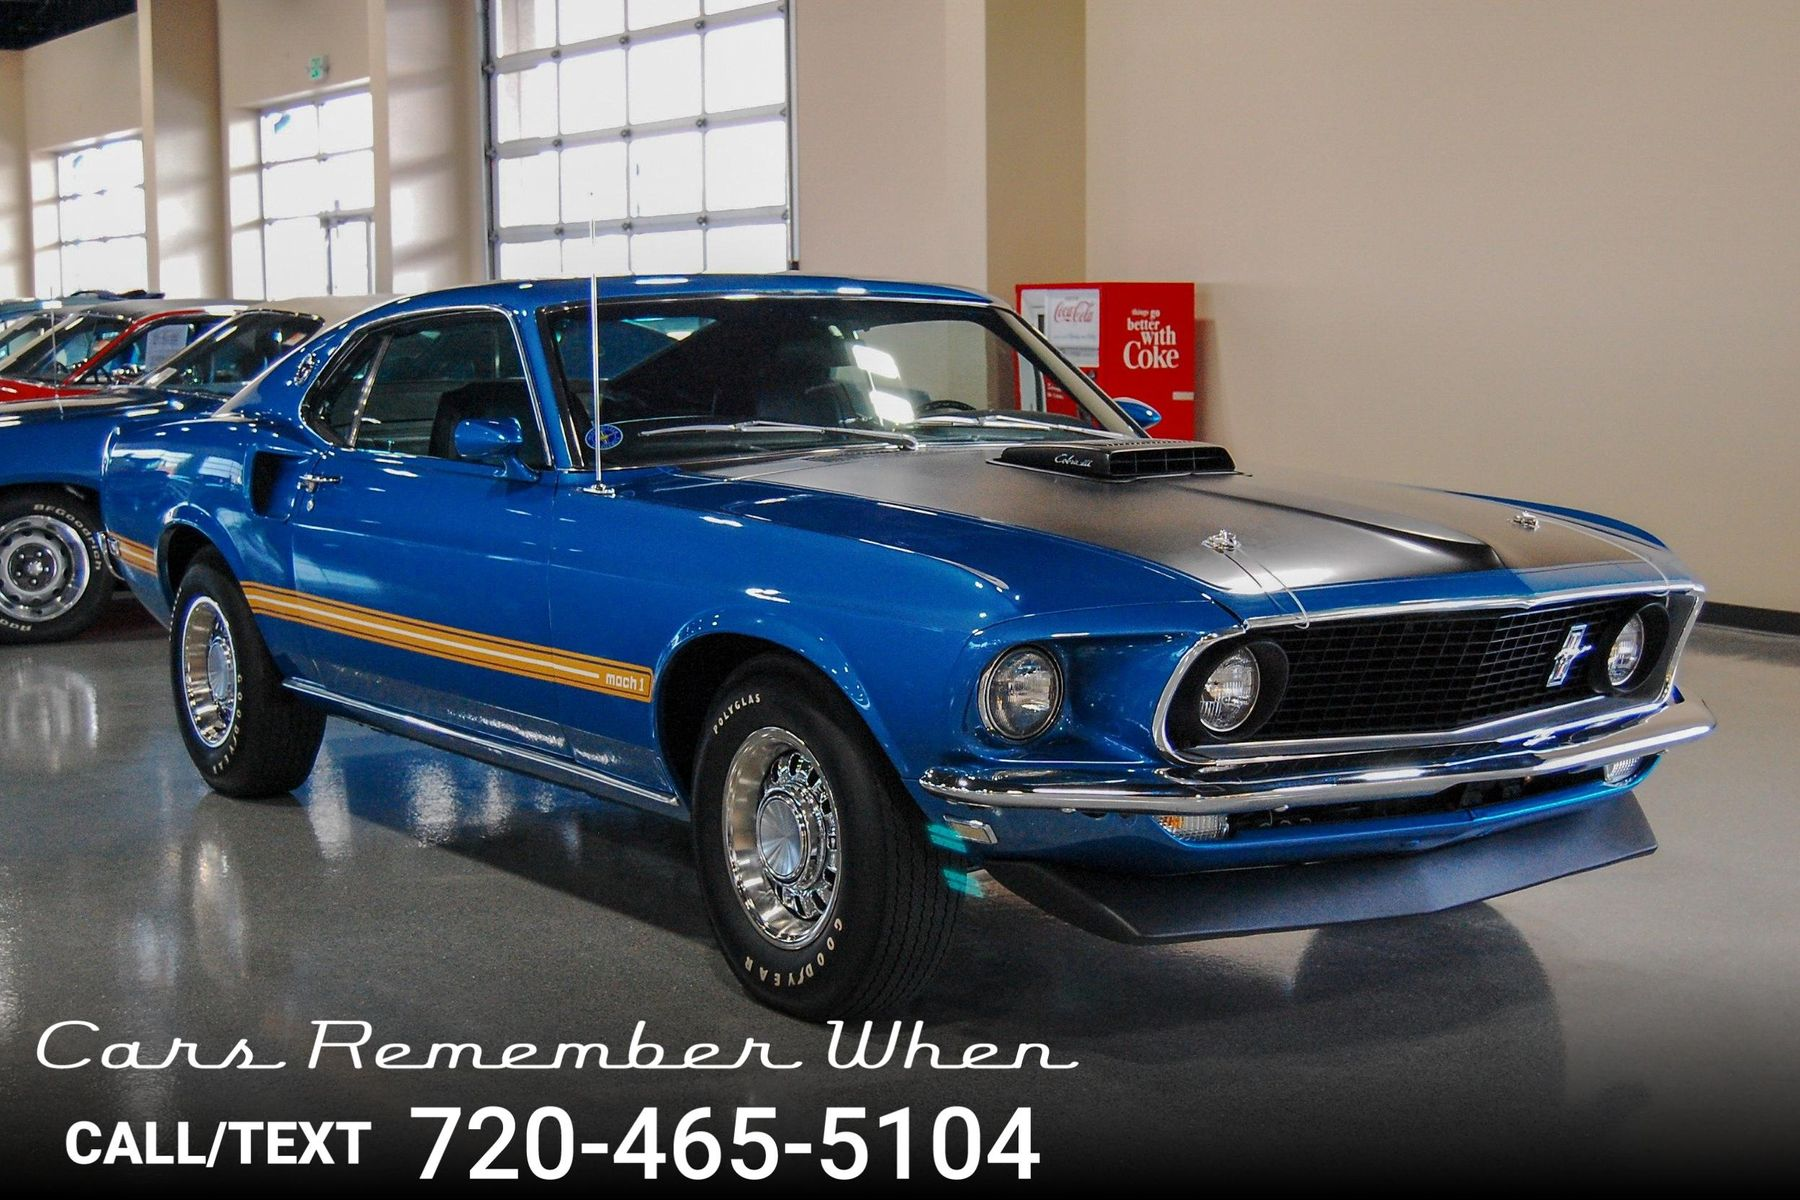 1969 Ford Mustang Mach 1 Cars Remember When Torino Gt 428 Co Jet